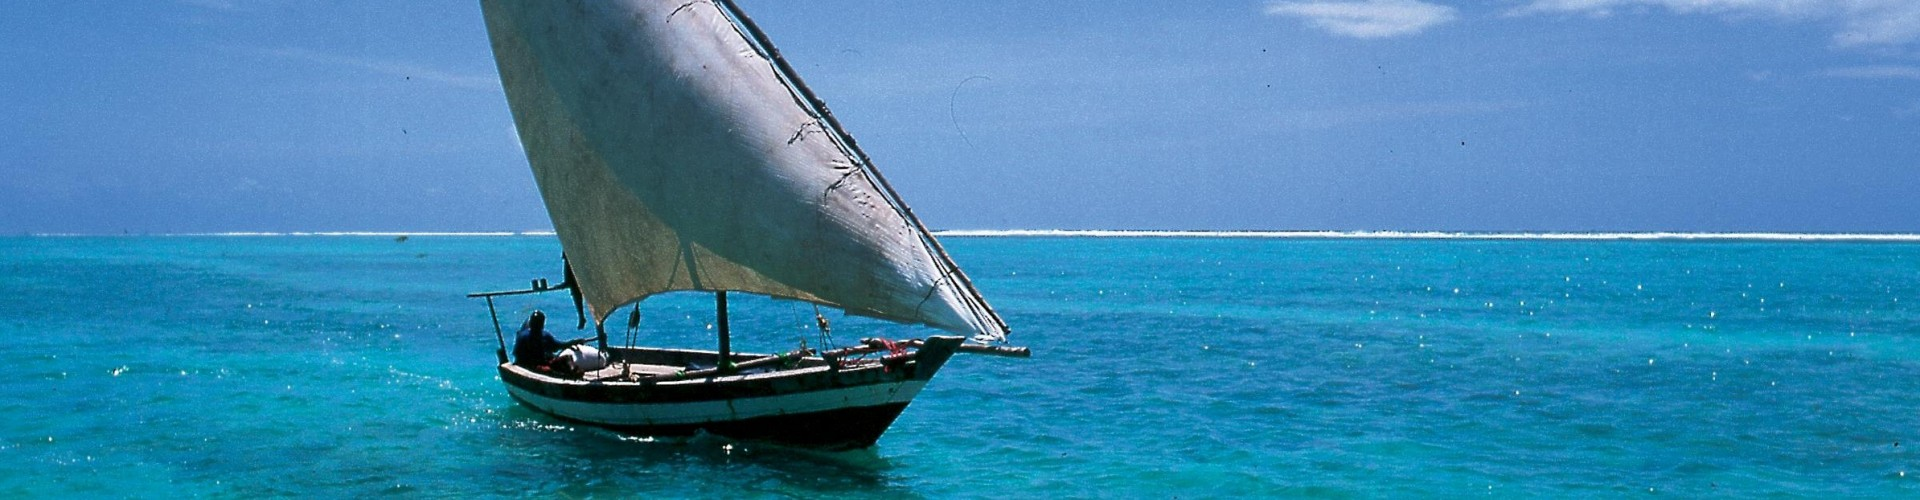 Dhow at sea 2488x1919